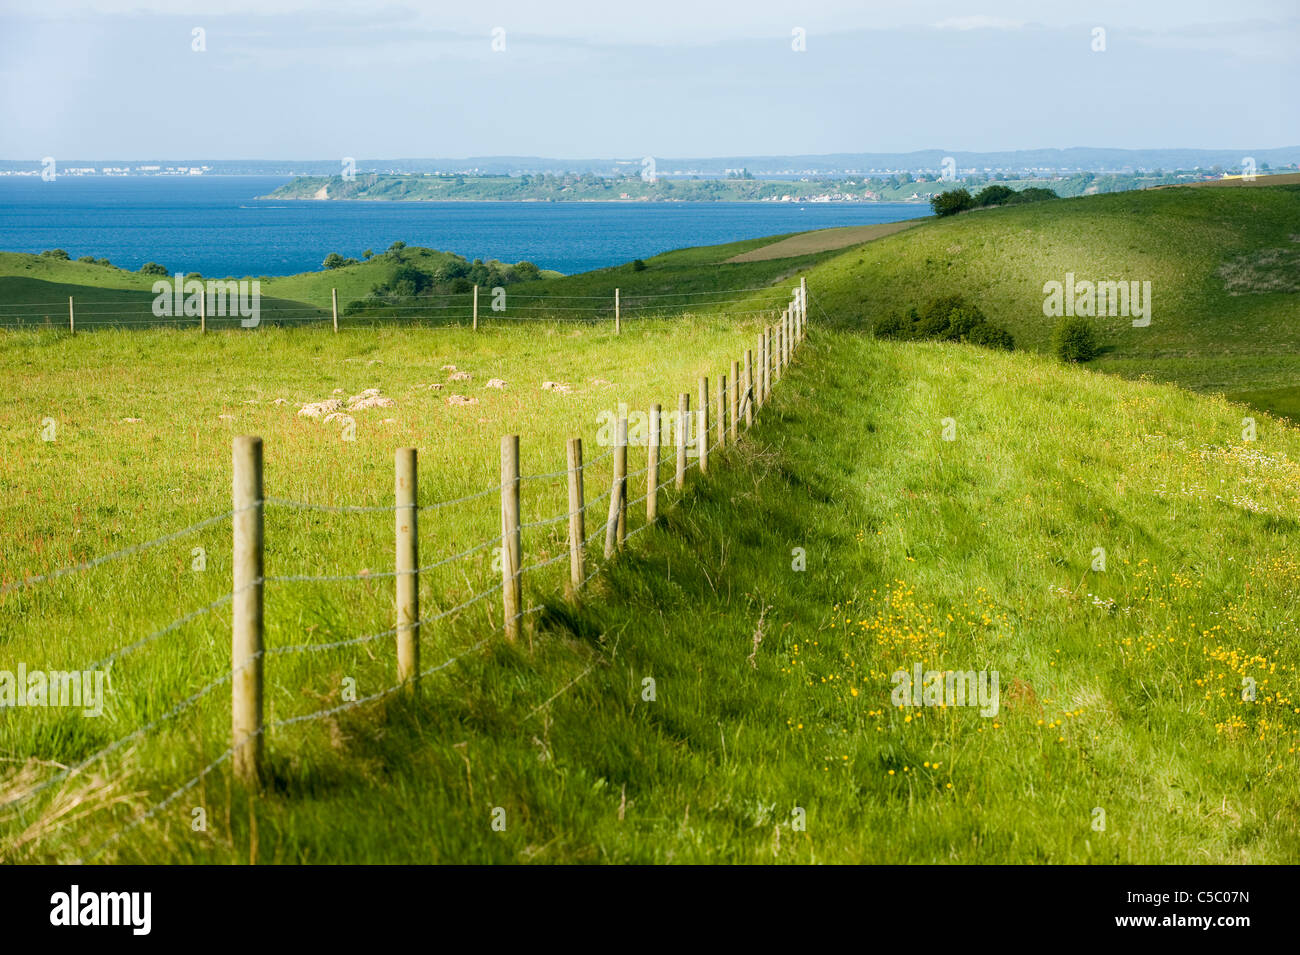 Fenced lush green landscape with sea in the background - Stock Image